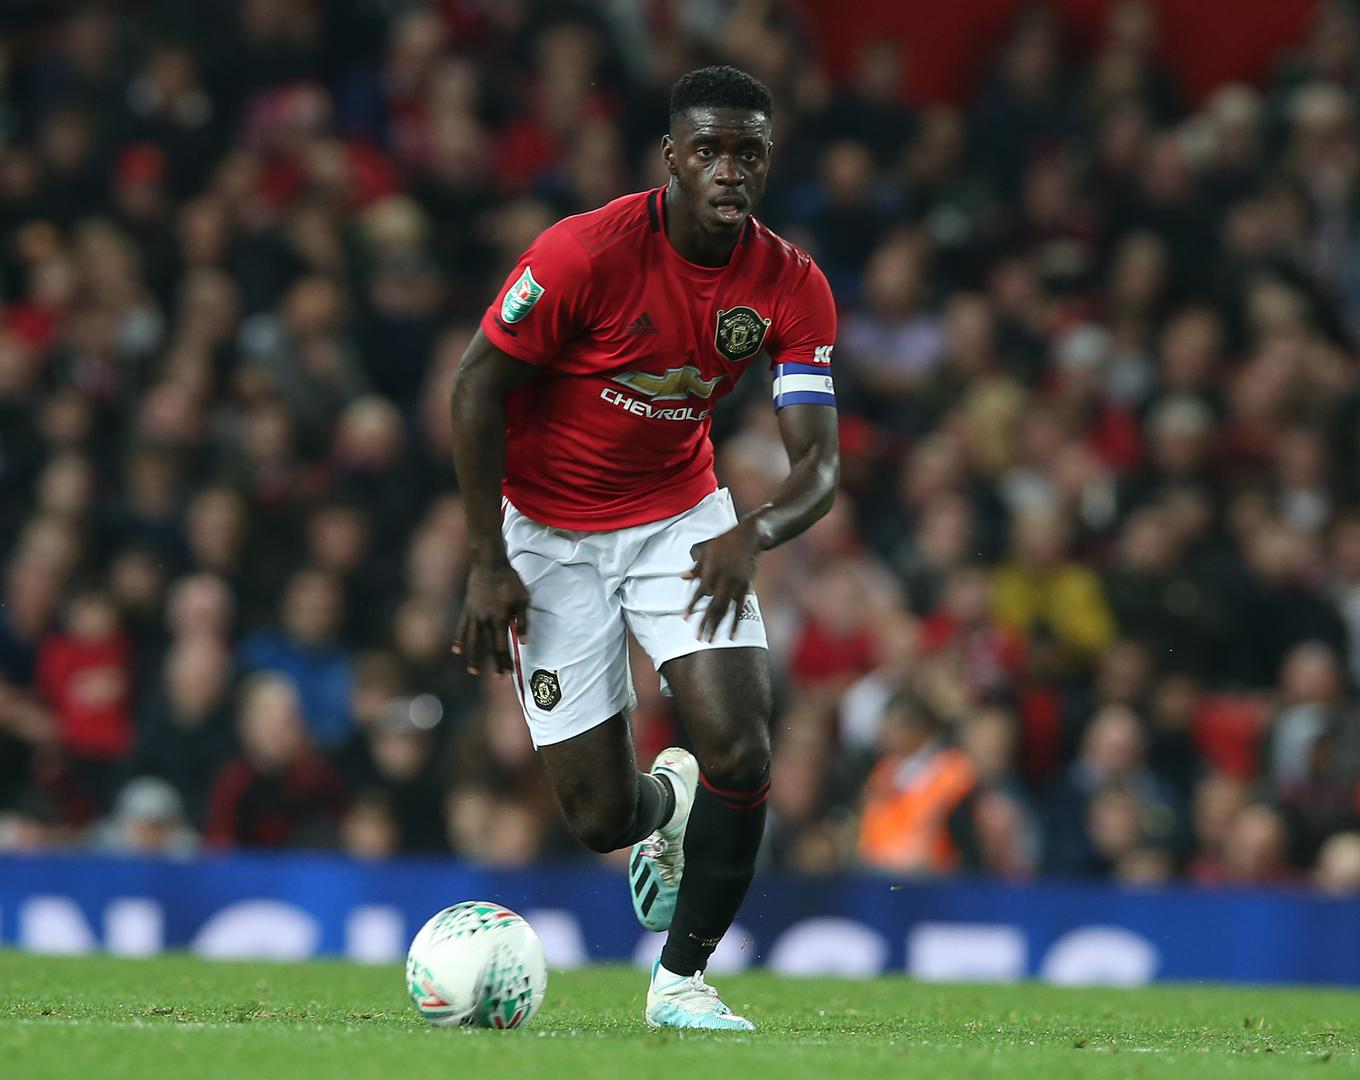 Axel Tuanzebe captai@ning United against Rochdale.